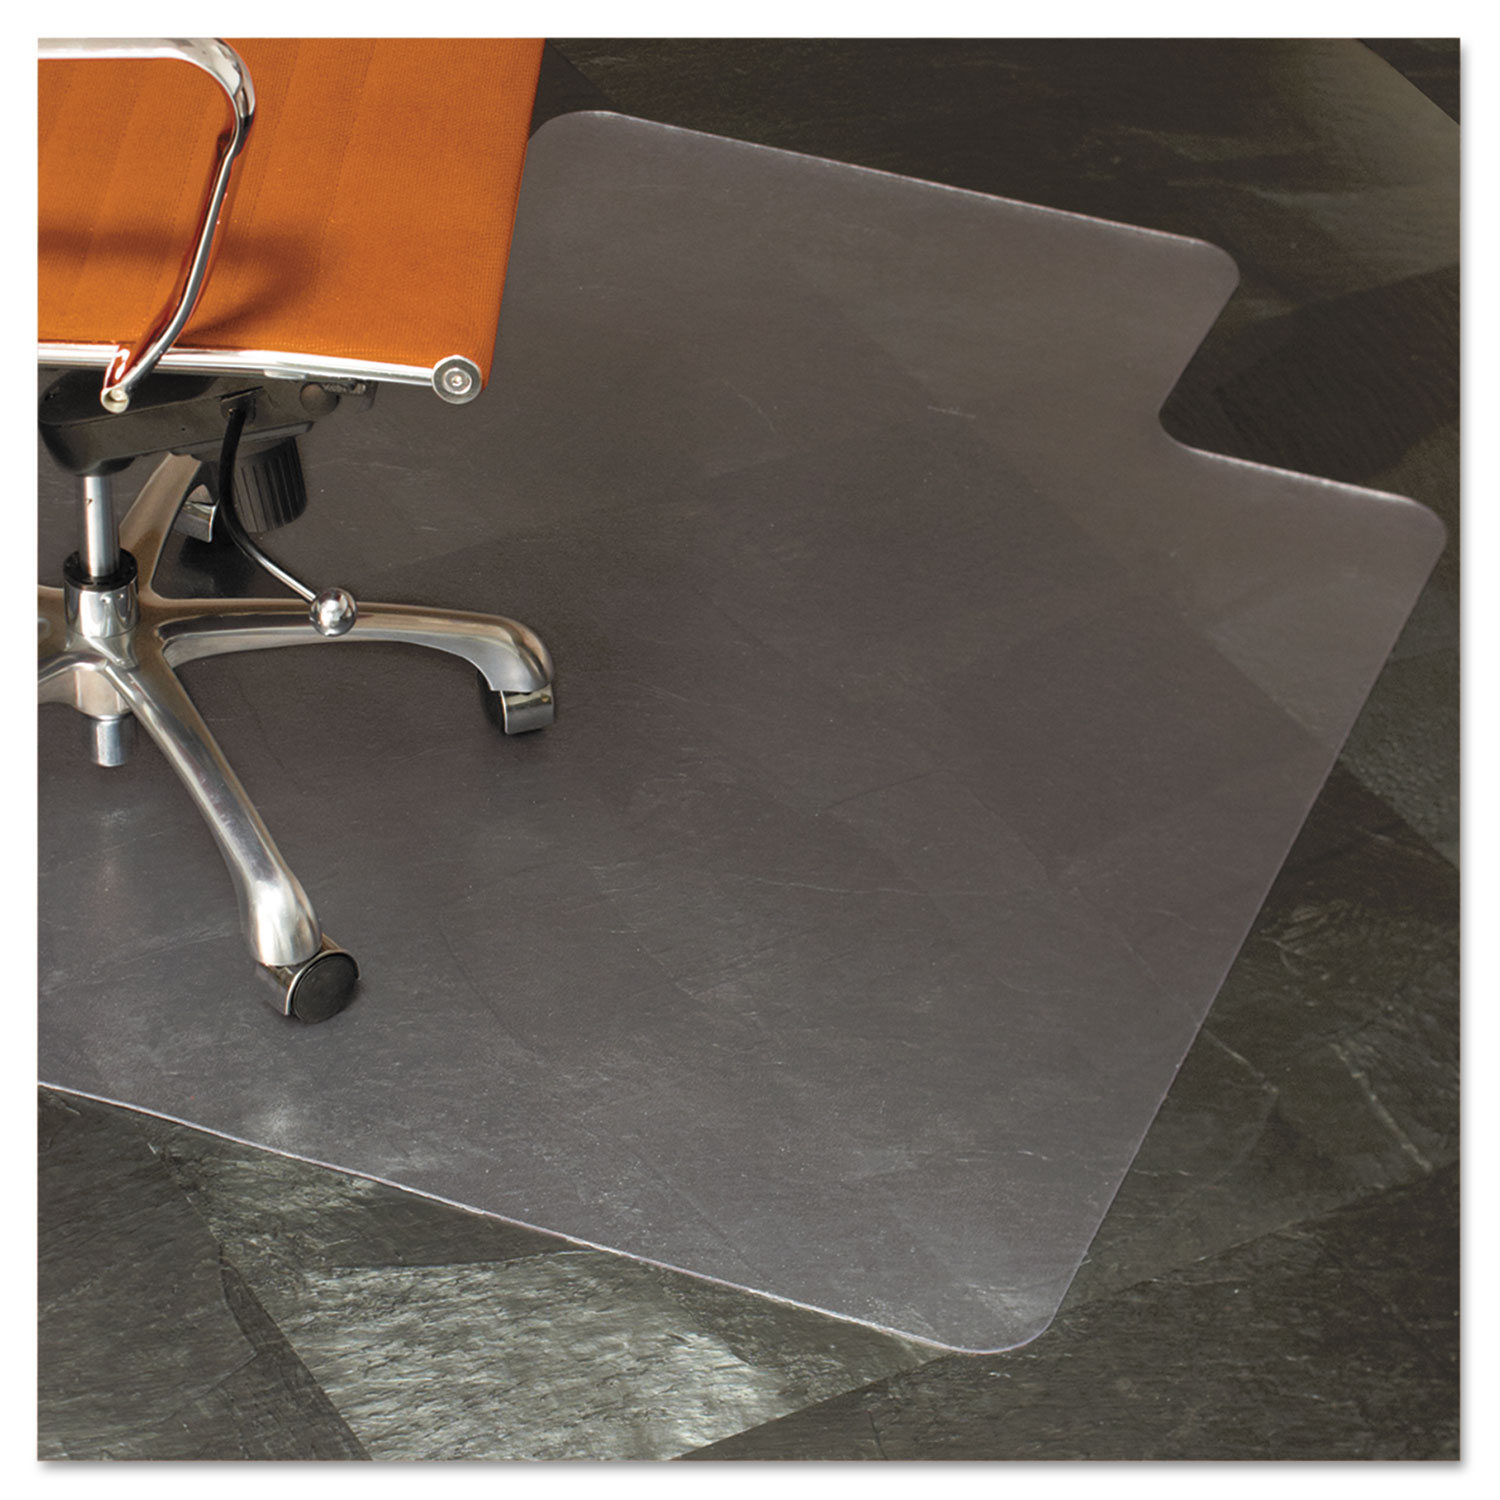 natural origins chair mat with lip for hard floors by es robbins